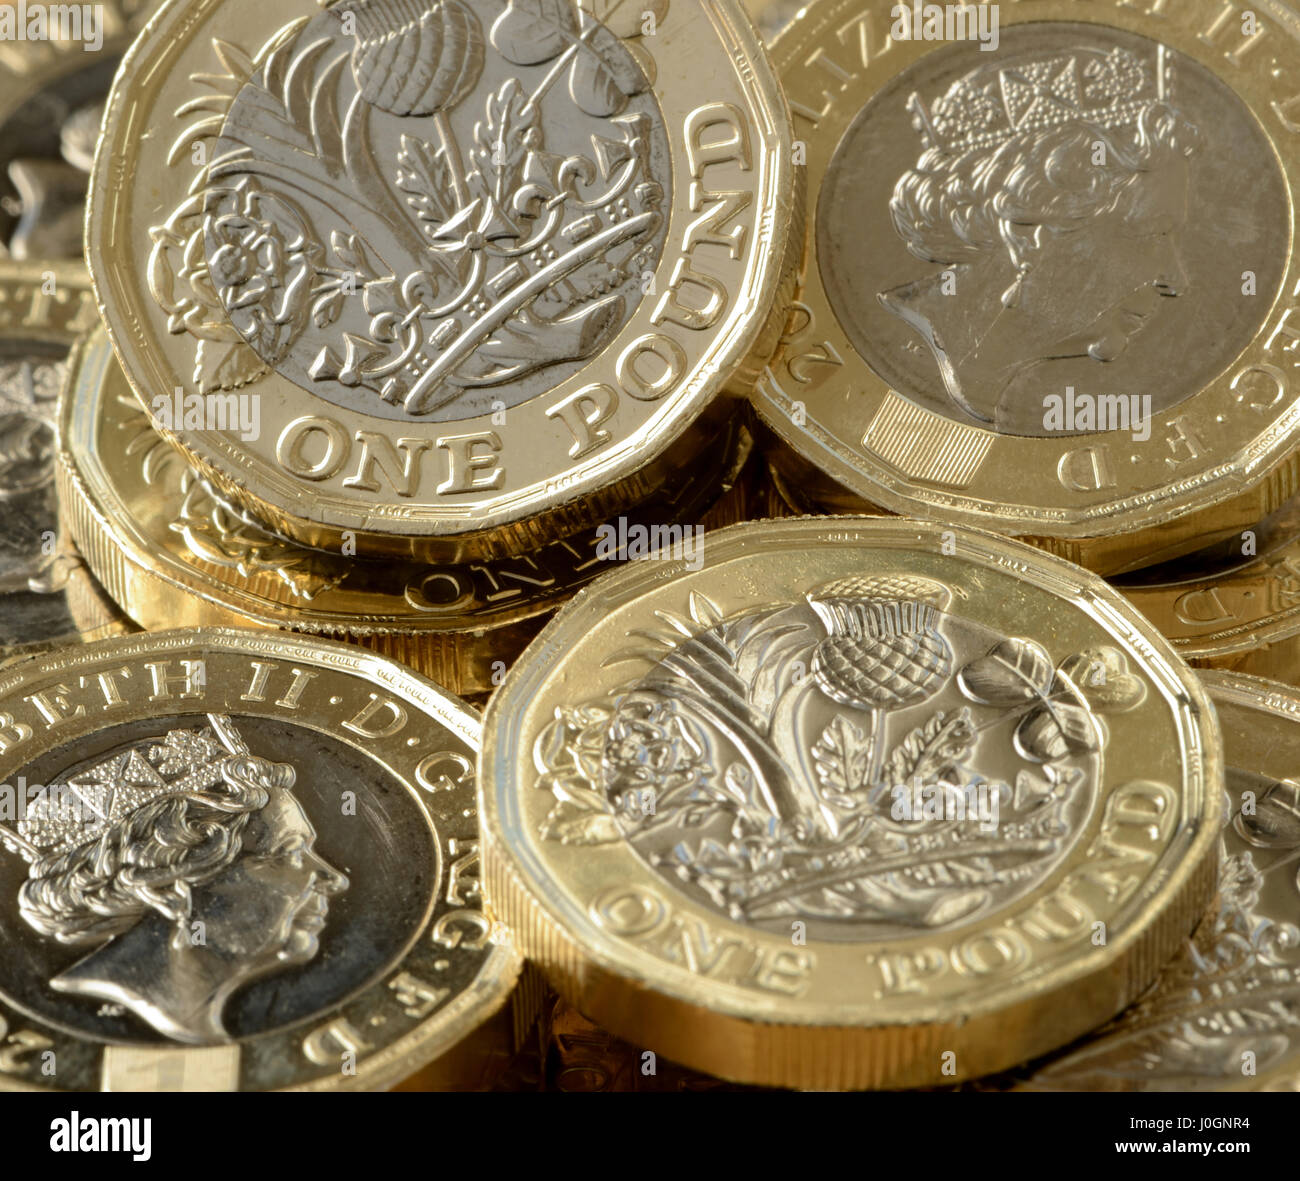 New £1 coin is 12 sided and is the most secure coin in the world - British new £1 coin is bimetallic with latent Stock Photo